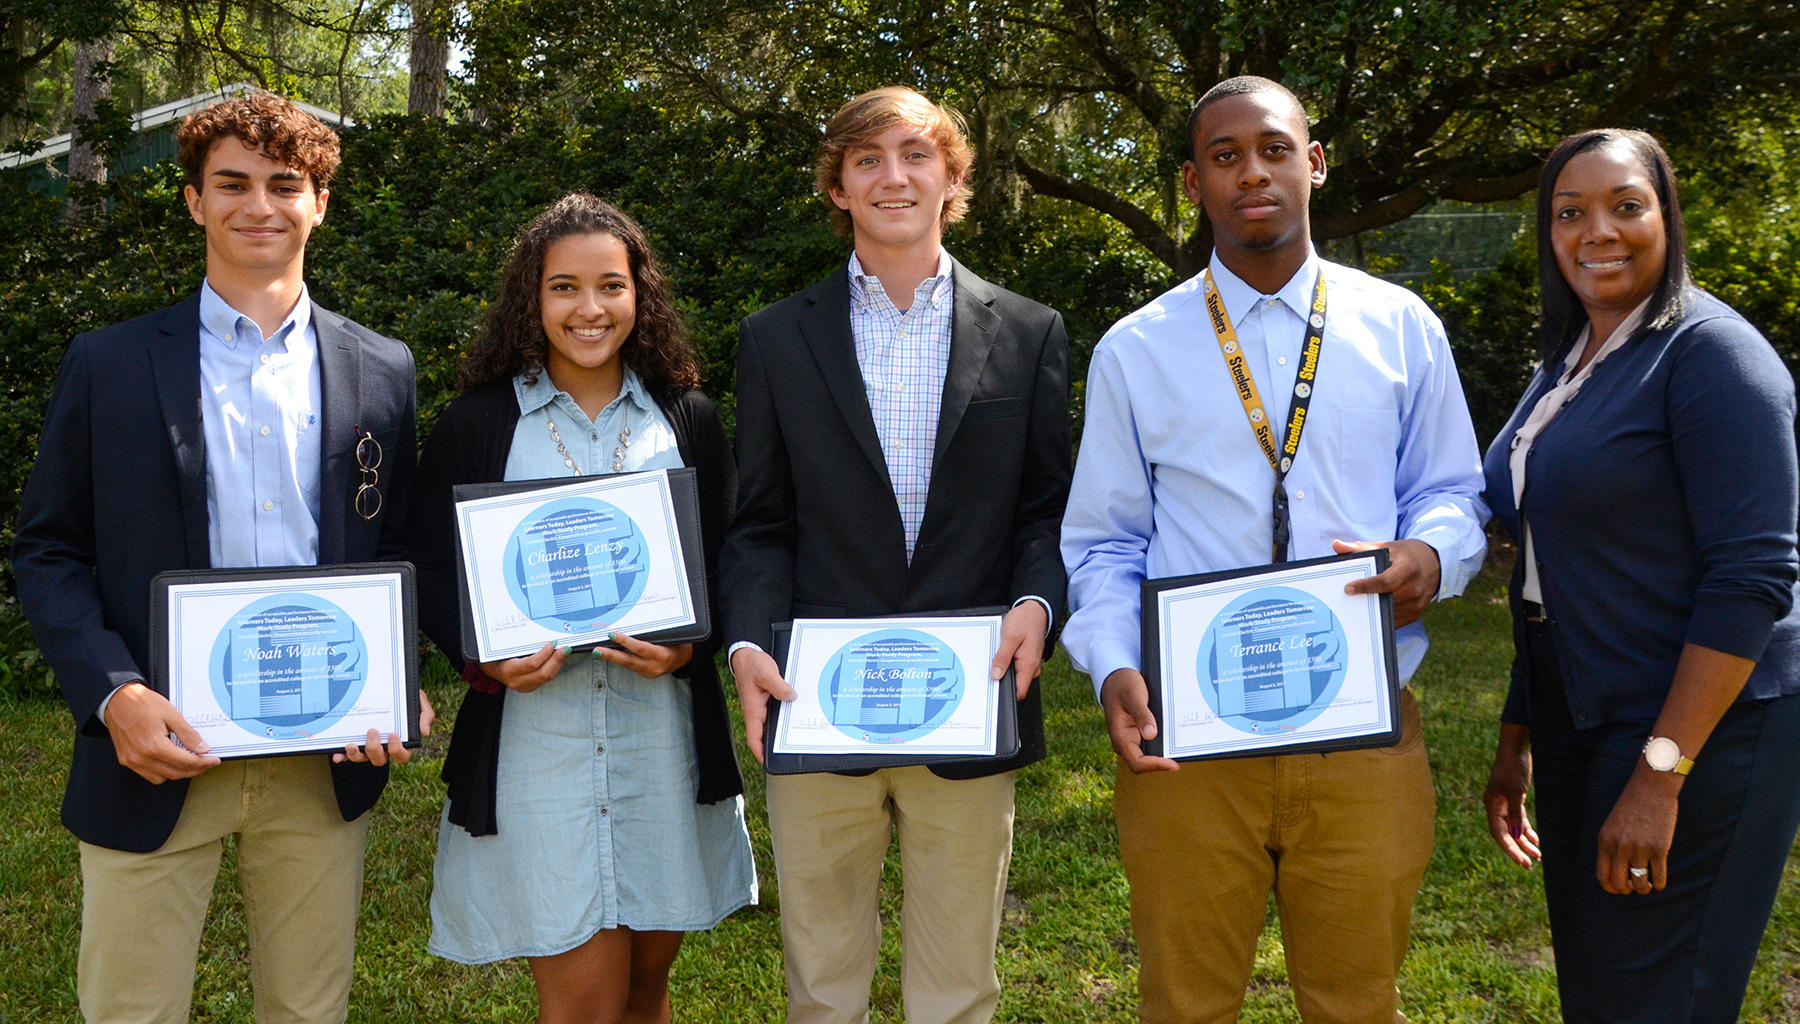 (From left) Noah Waters, Charlize Lenzy, Nick Bolton and Terrance Lee were each awarded $500 scholarships upon completion of their 2017 work-study program by Human Resources Manager Daphanie Harris.